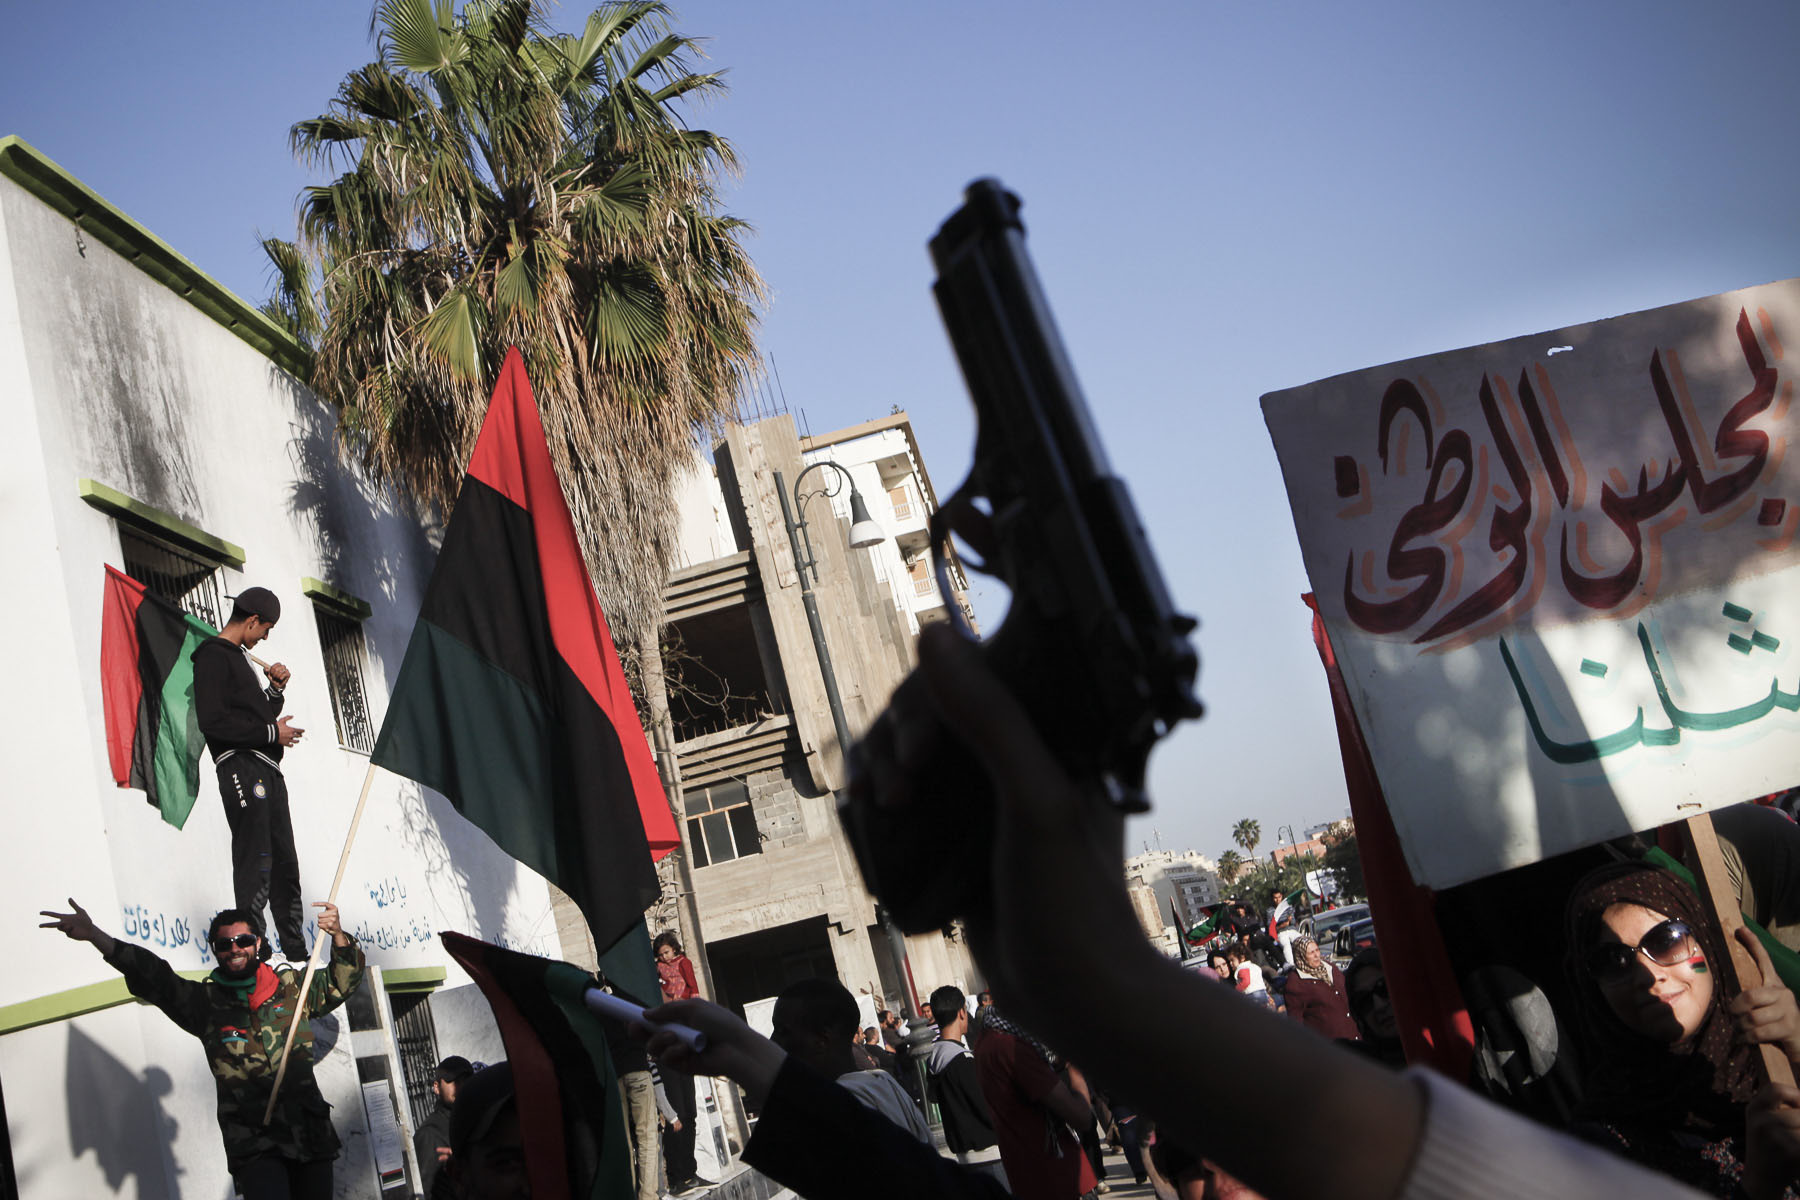 Libyan women demonstrate with false weapons to ask more military aid in April 2011